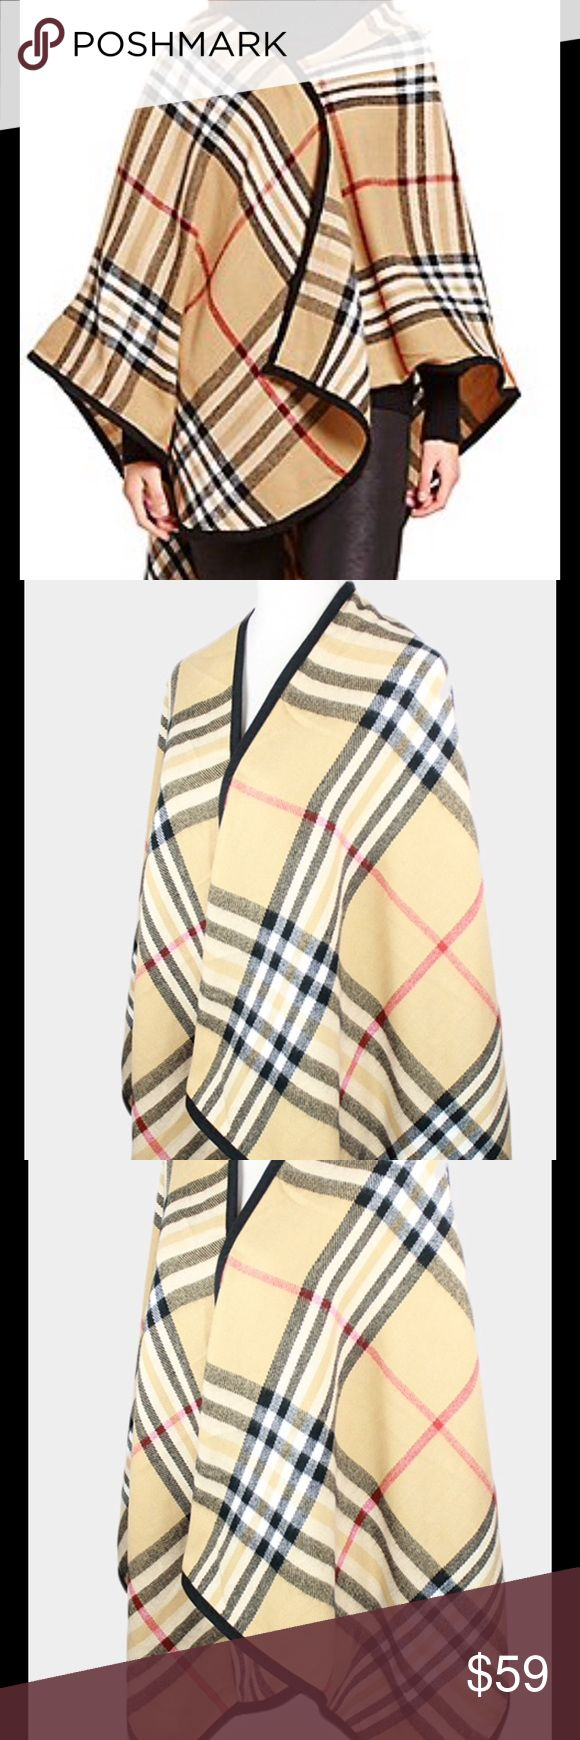 Scottish tartans check wrap poncho • Color : Camel  • Size : One size fits most • Material : Polyester • Scottish tartans check wrap poncho Jackets & Coats Capes